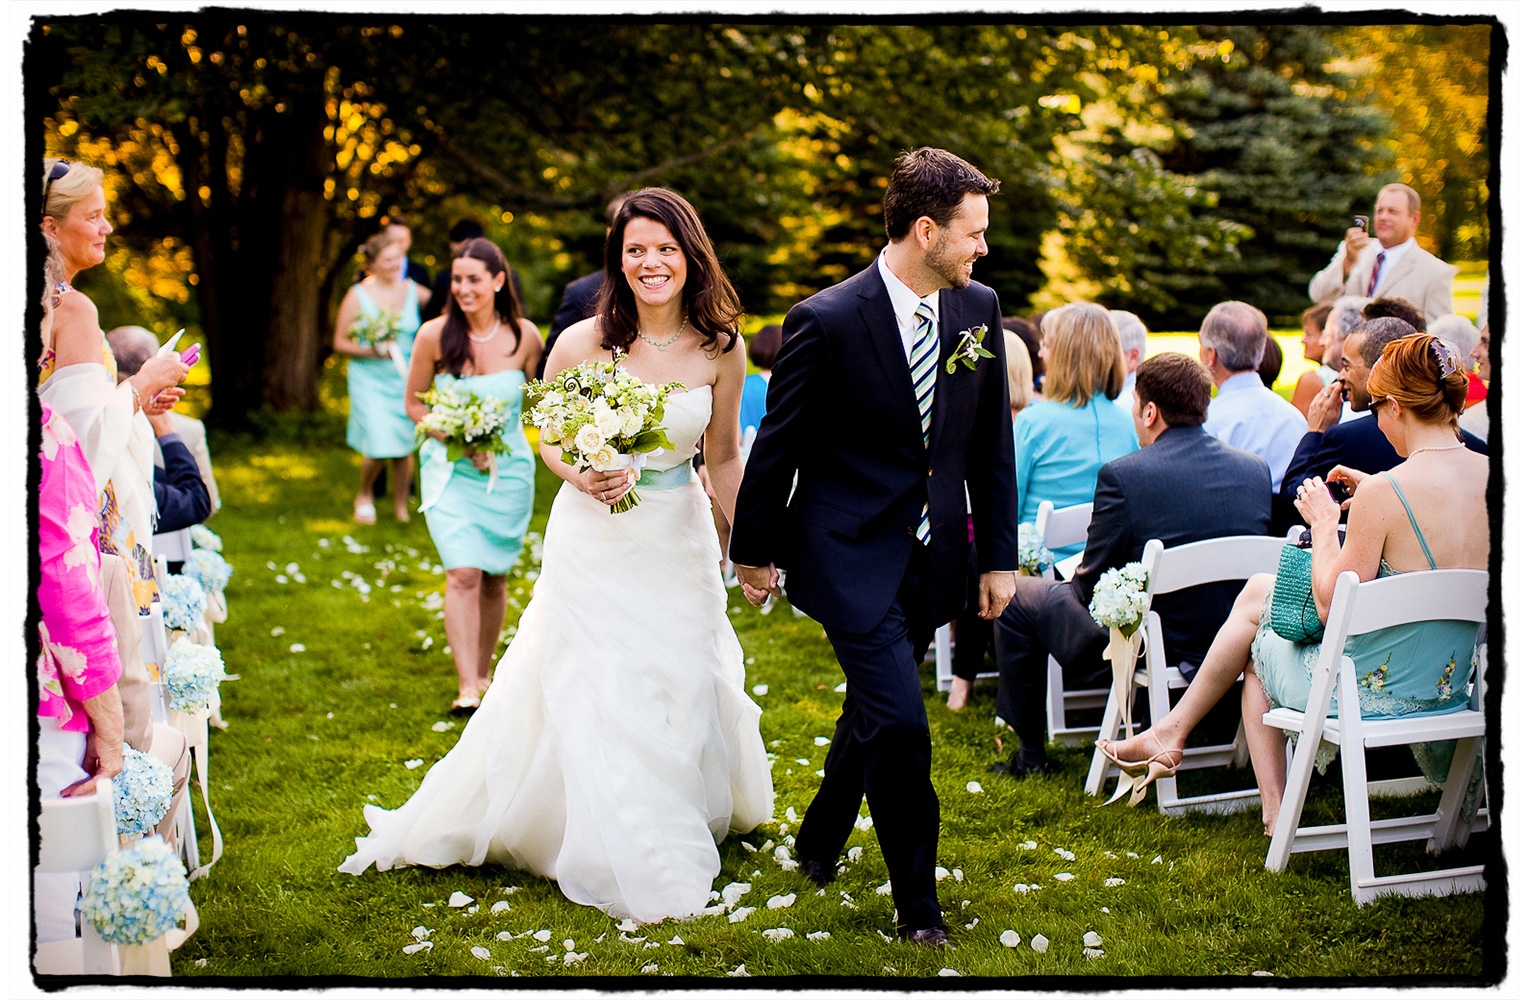 Luke and Anna walk back down the aisle after a sweet outdoor summer ceremony at The Winthrop Estate in western Massachusetts.